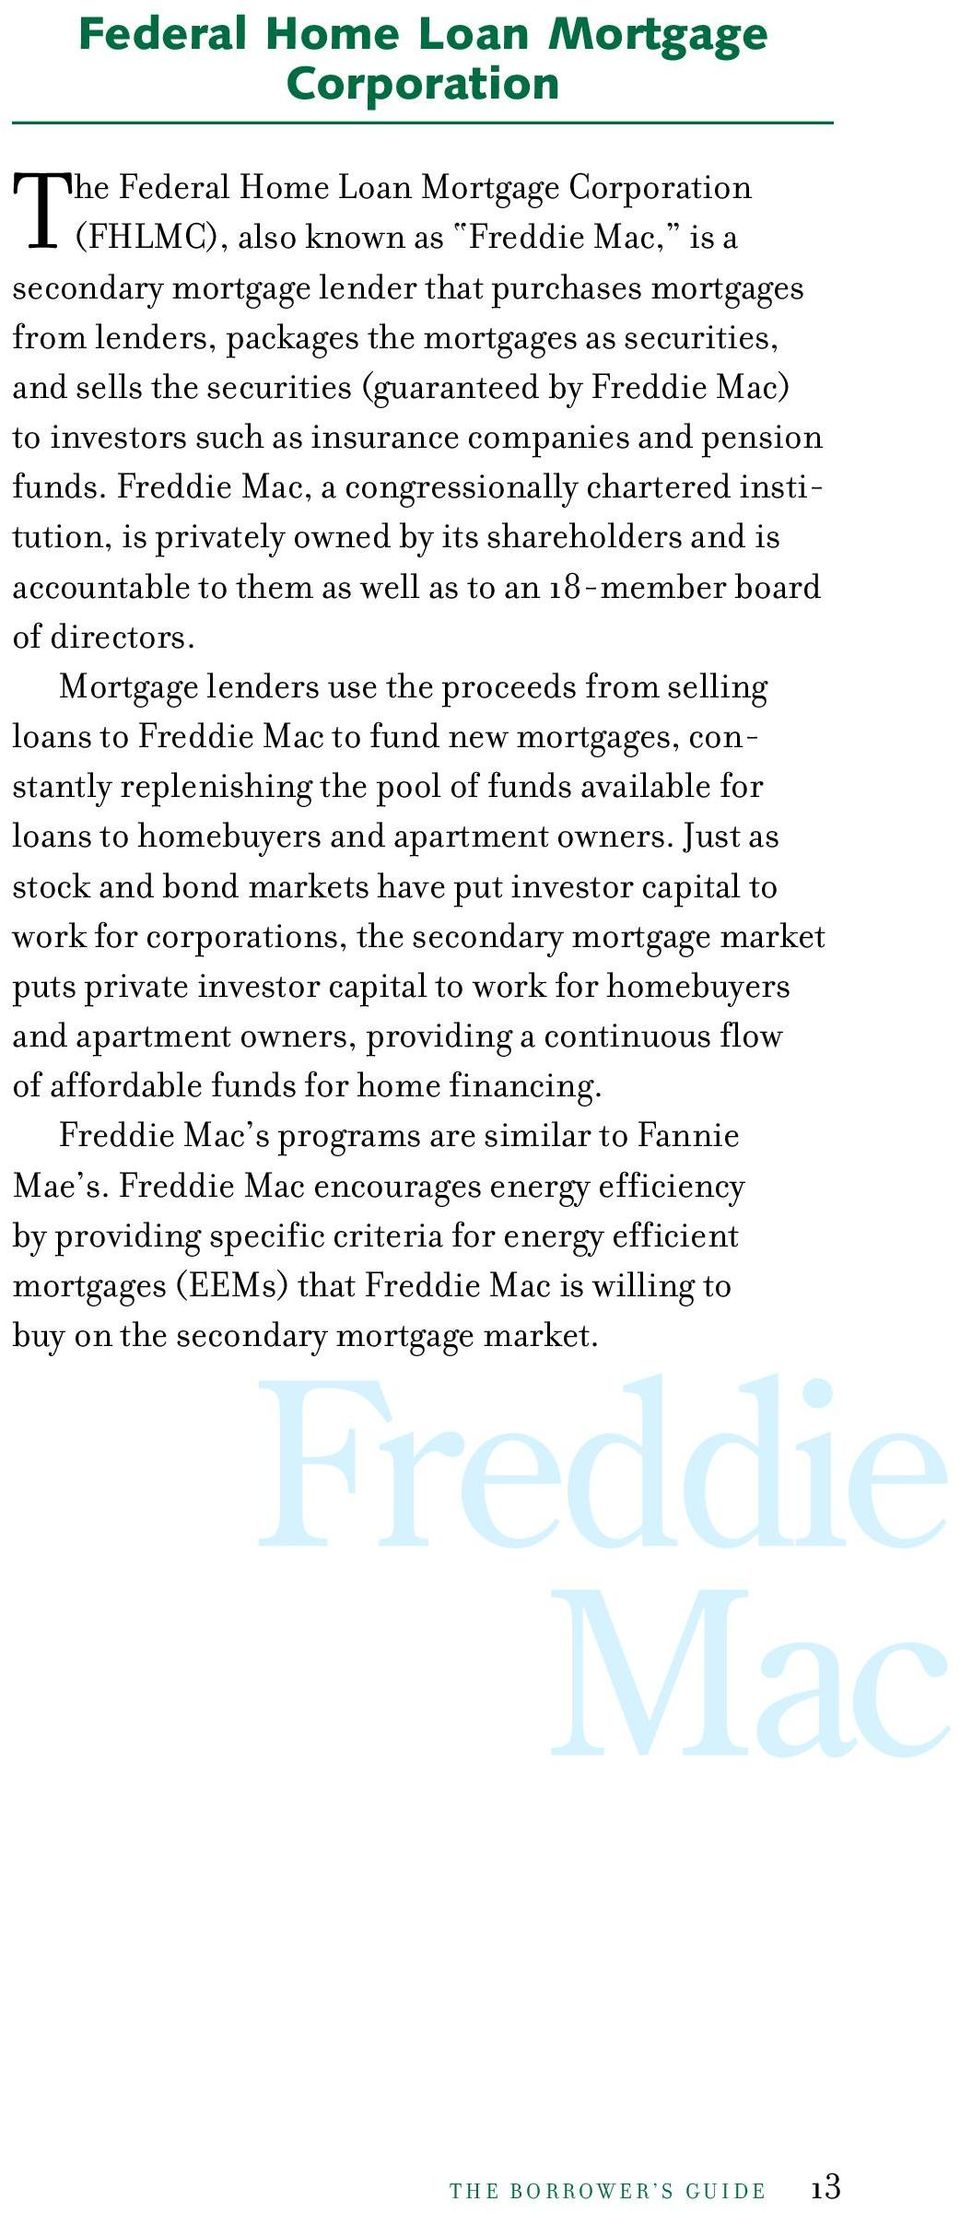 Freddie Mac, a congressionally chartered institution, is privately owned by its shareholders and is accountable to them as well as to an 18-member board of directors.